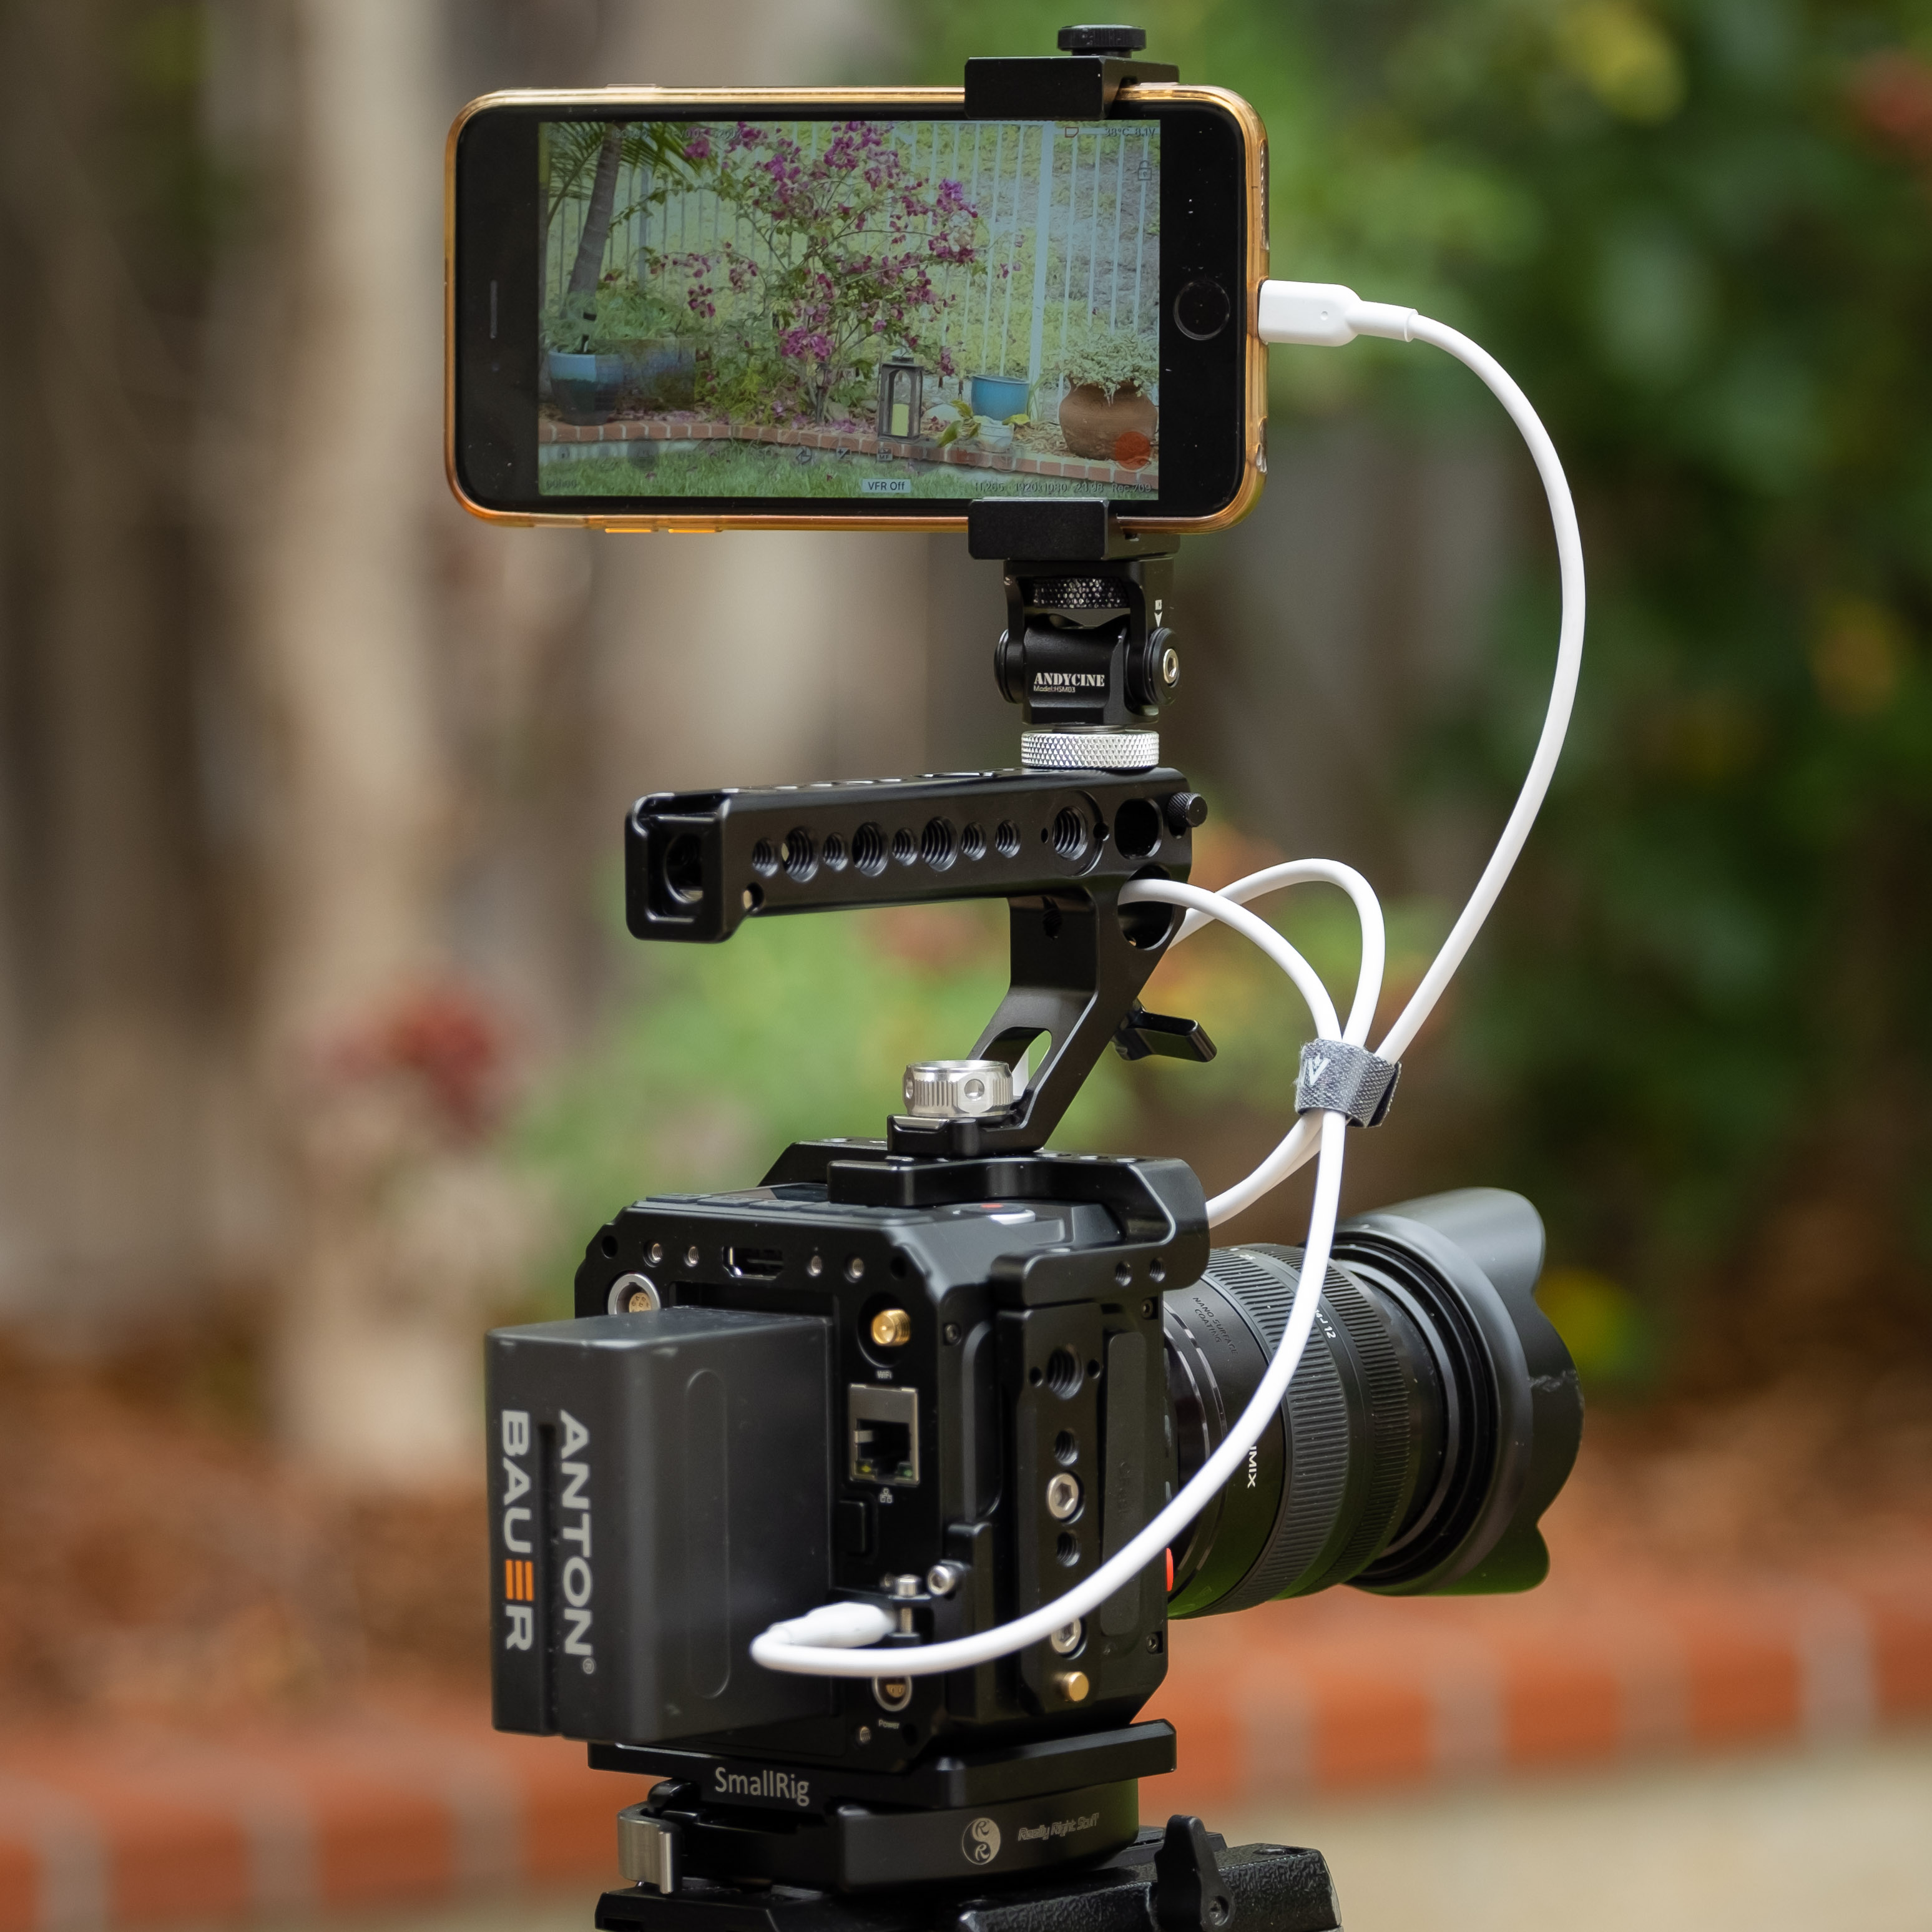 Z Cam E2 Hands-on review - Newsshooter